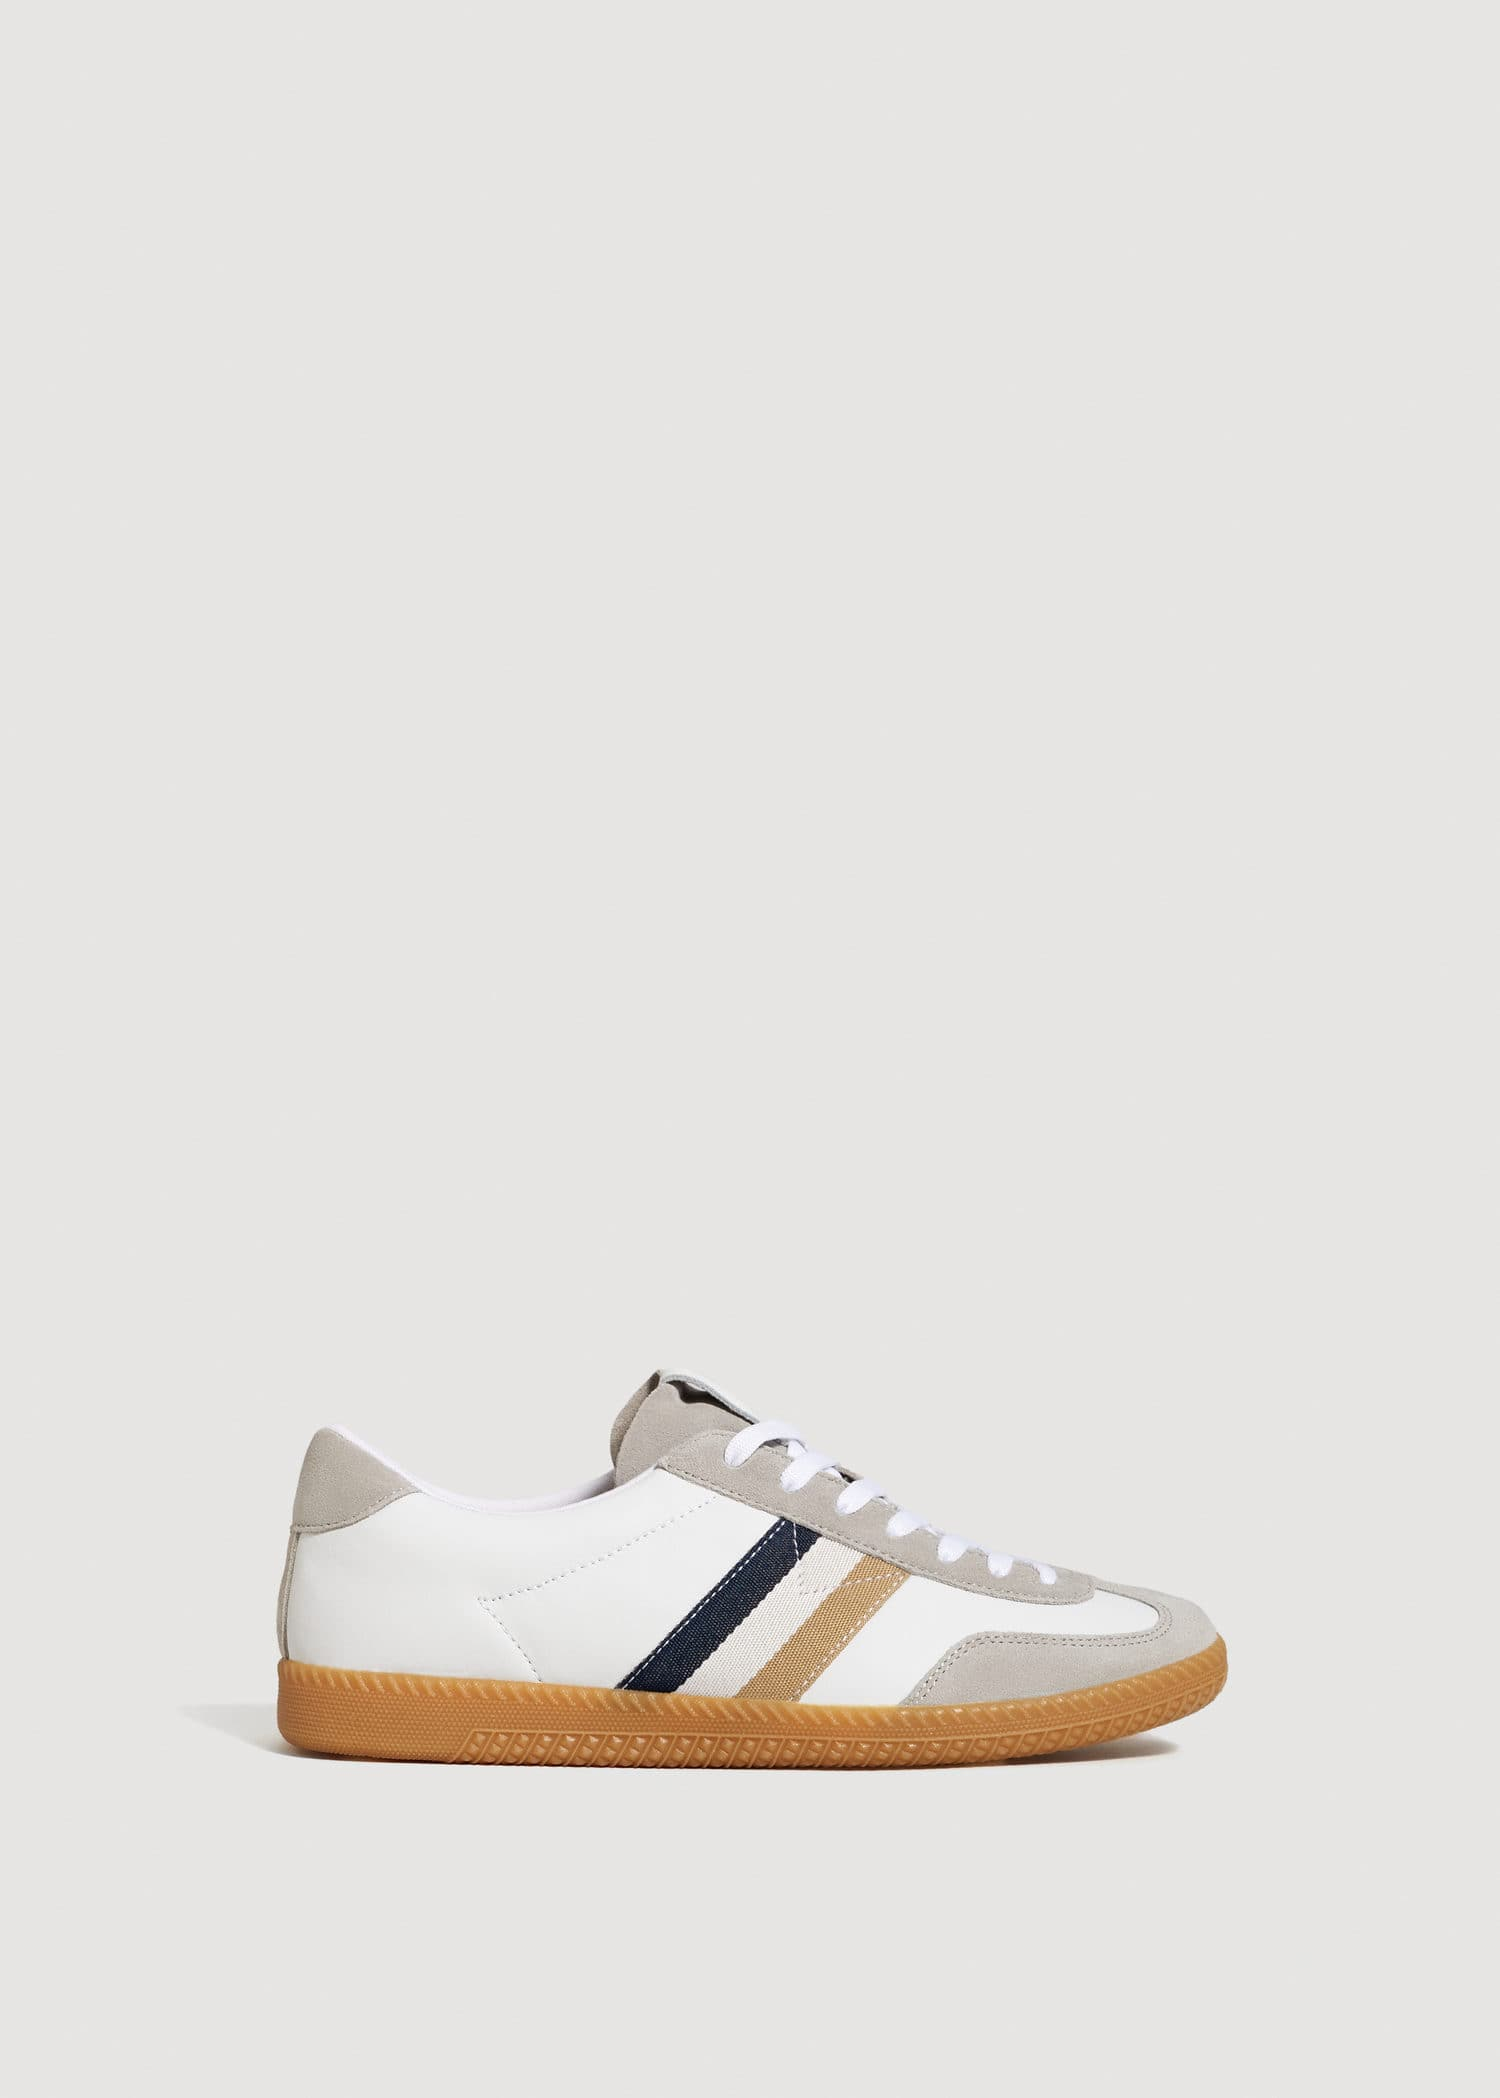 Panels leather sneakers Man | OUTLET Norway